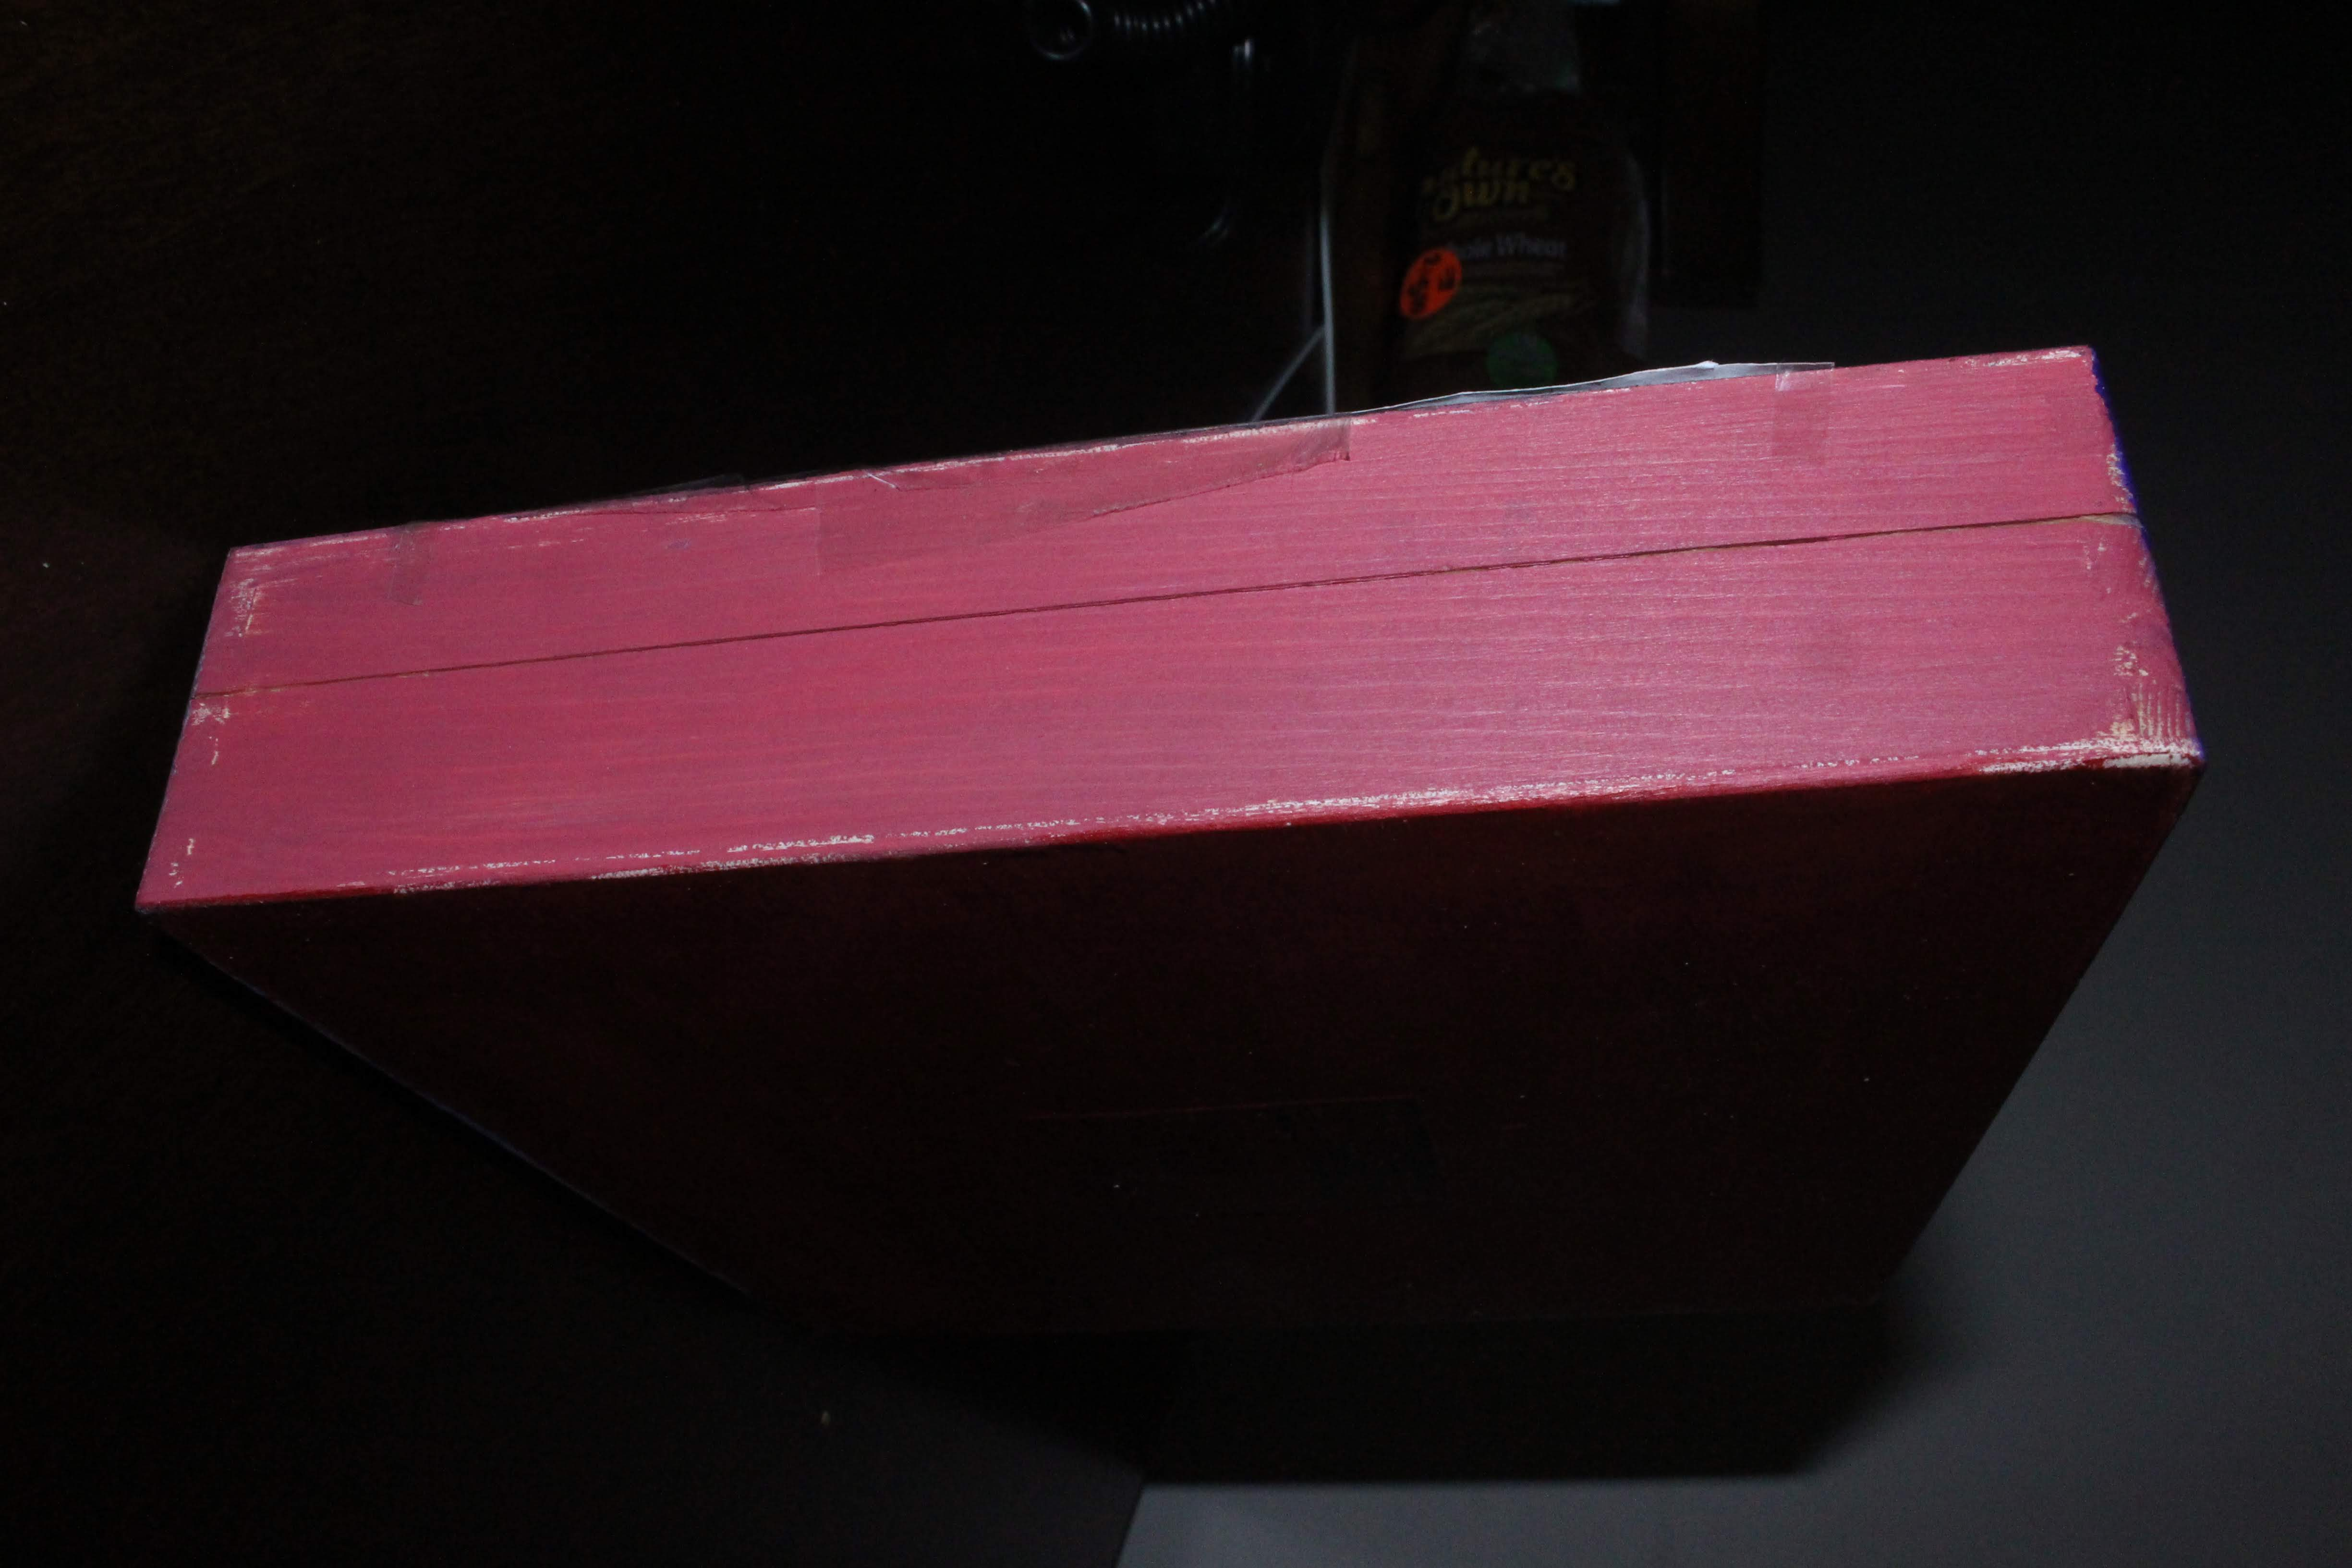 A side view of the hip-hop keepsake box.